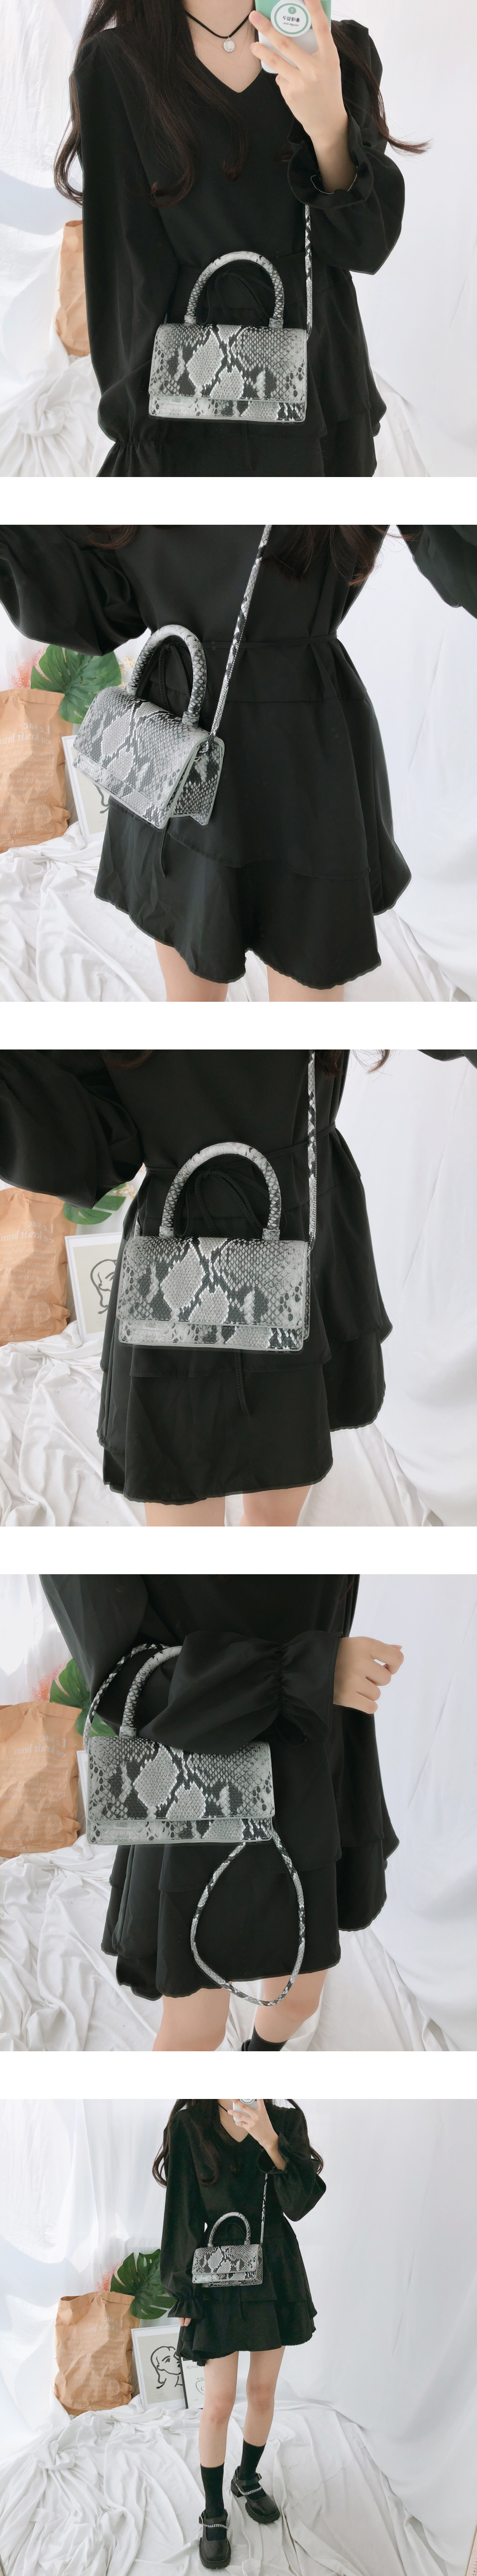 063 mini rectangular hard tote shoulder bag